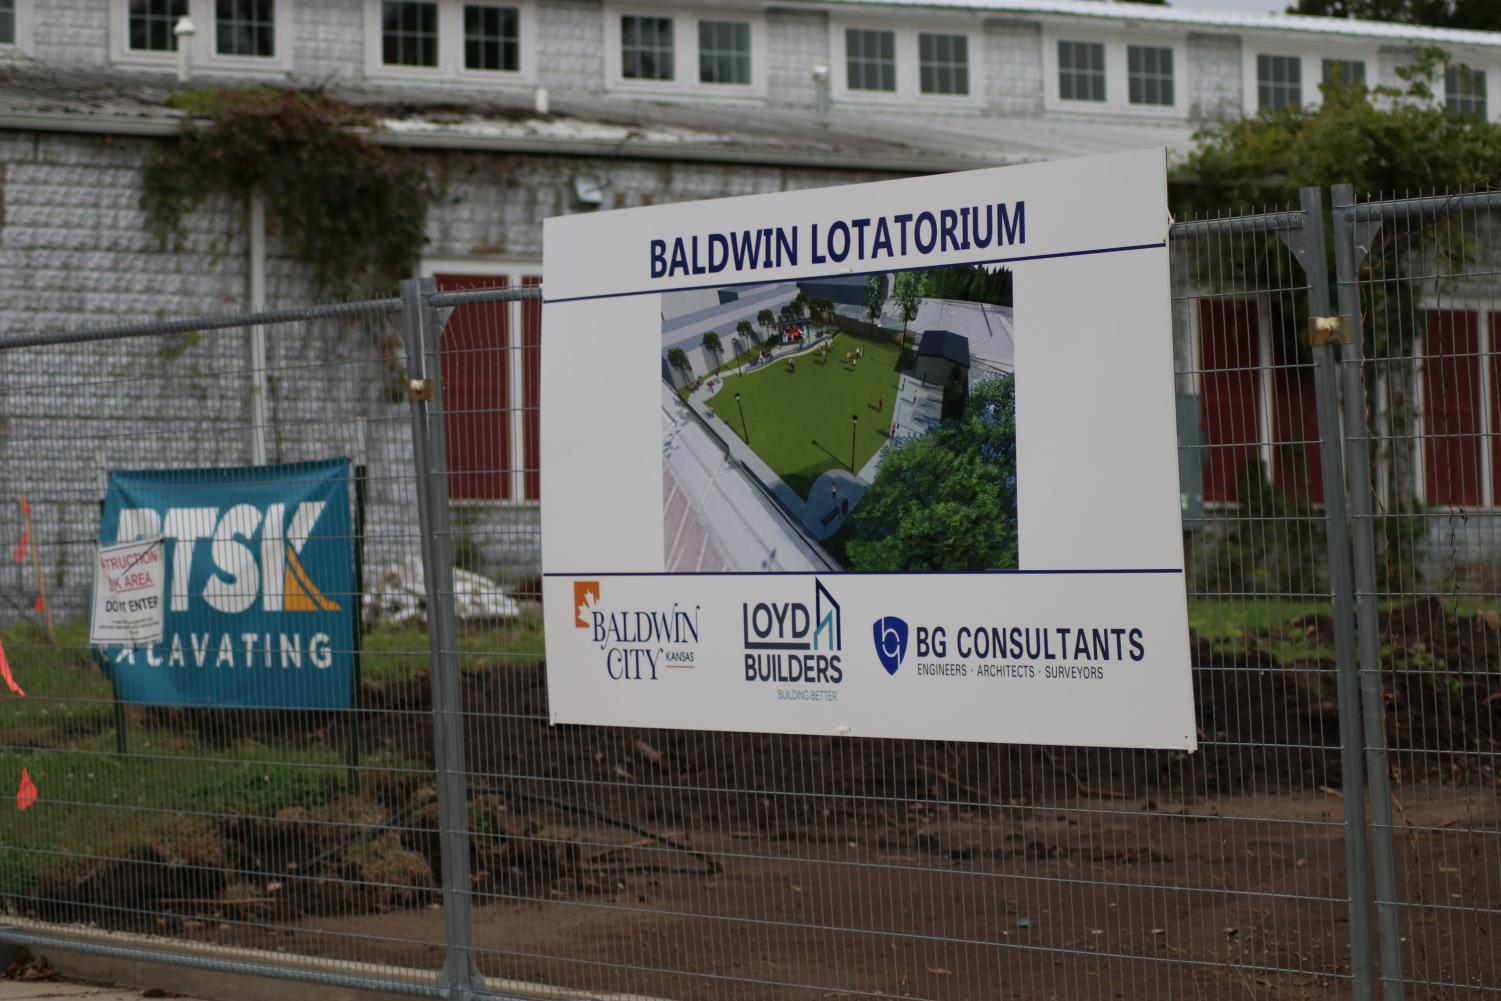 Baldwin City will soon have our very own Lotatorium. The Baldwin City community got to voice their opinions about what they would like to see within the lotatorium. There goal is to have it complete by the end of 2019.